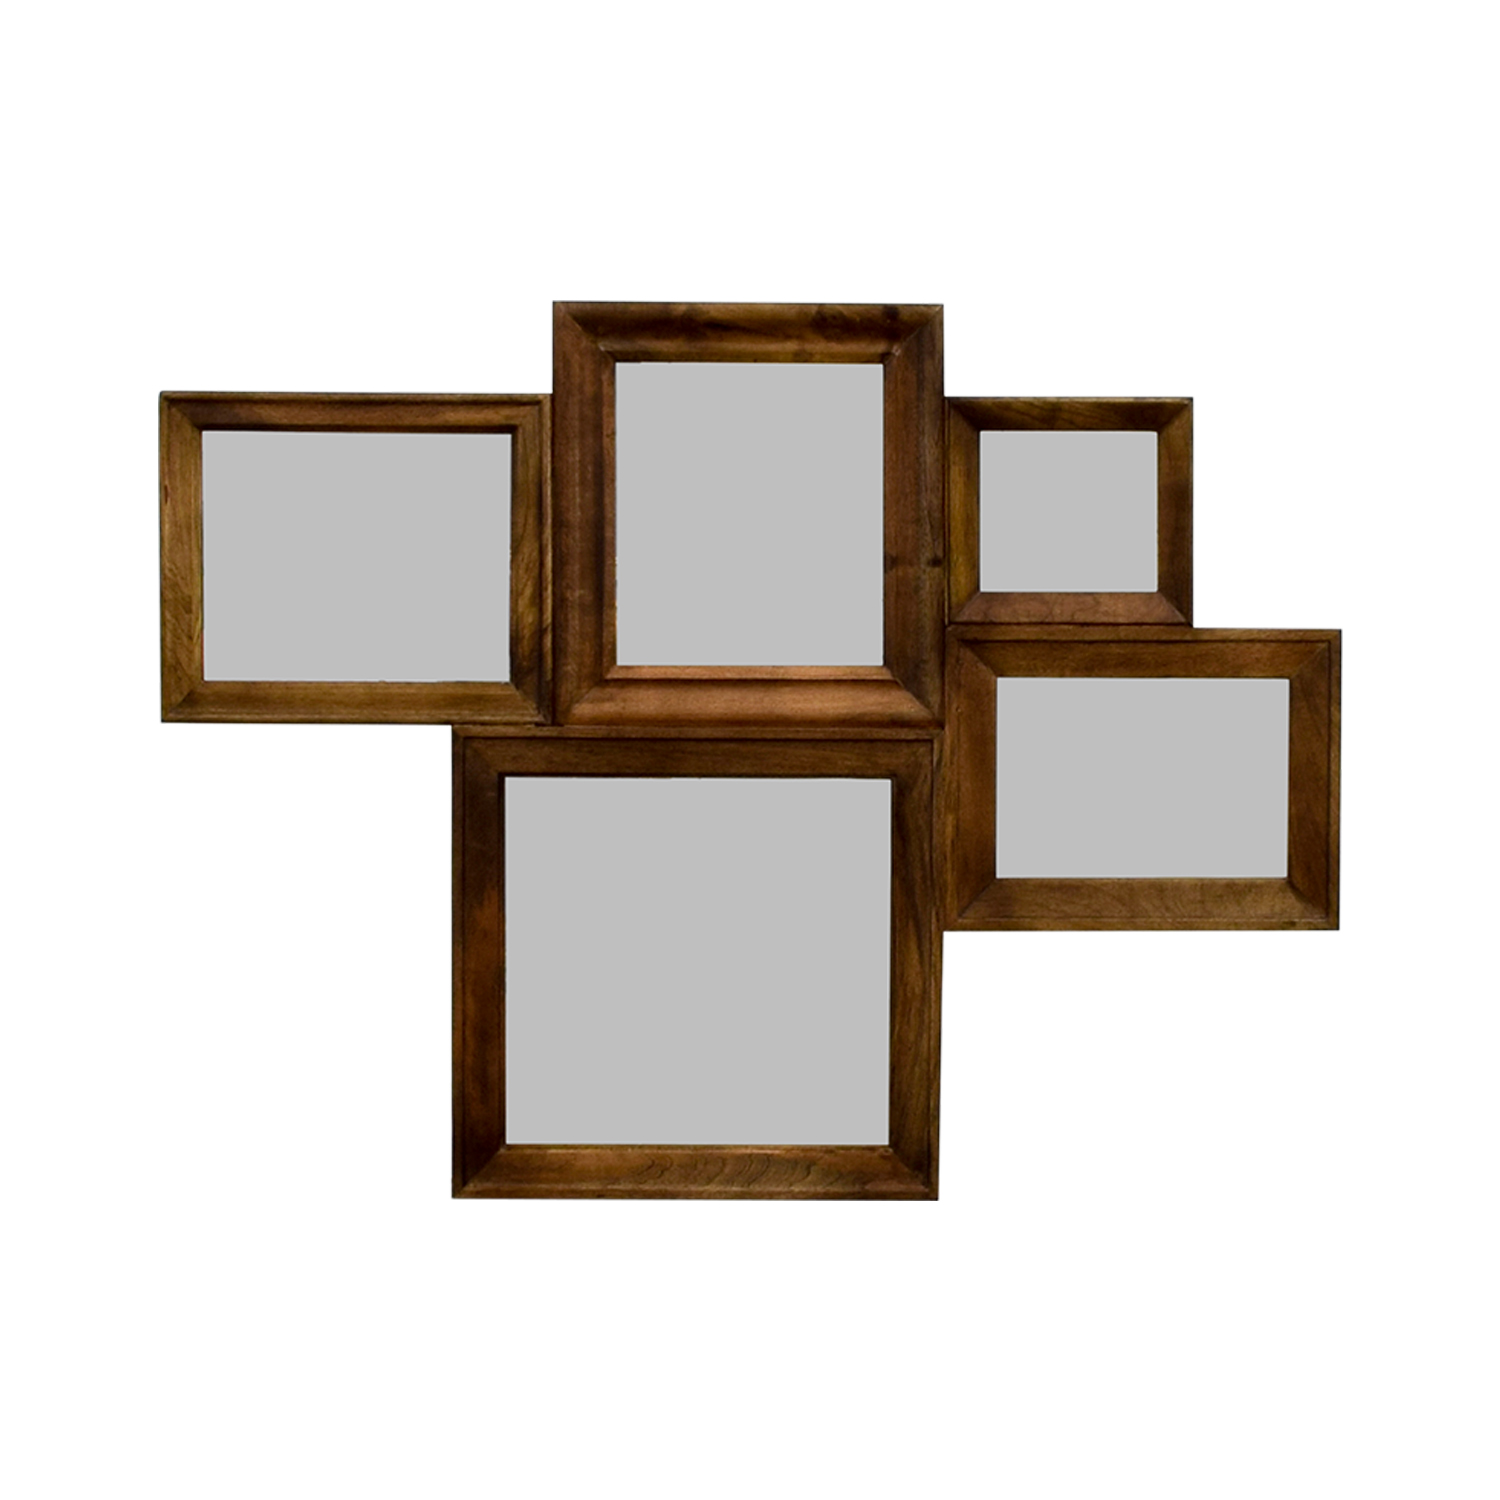 West Elm West Elm Jigsaw Mirror dimensions